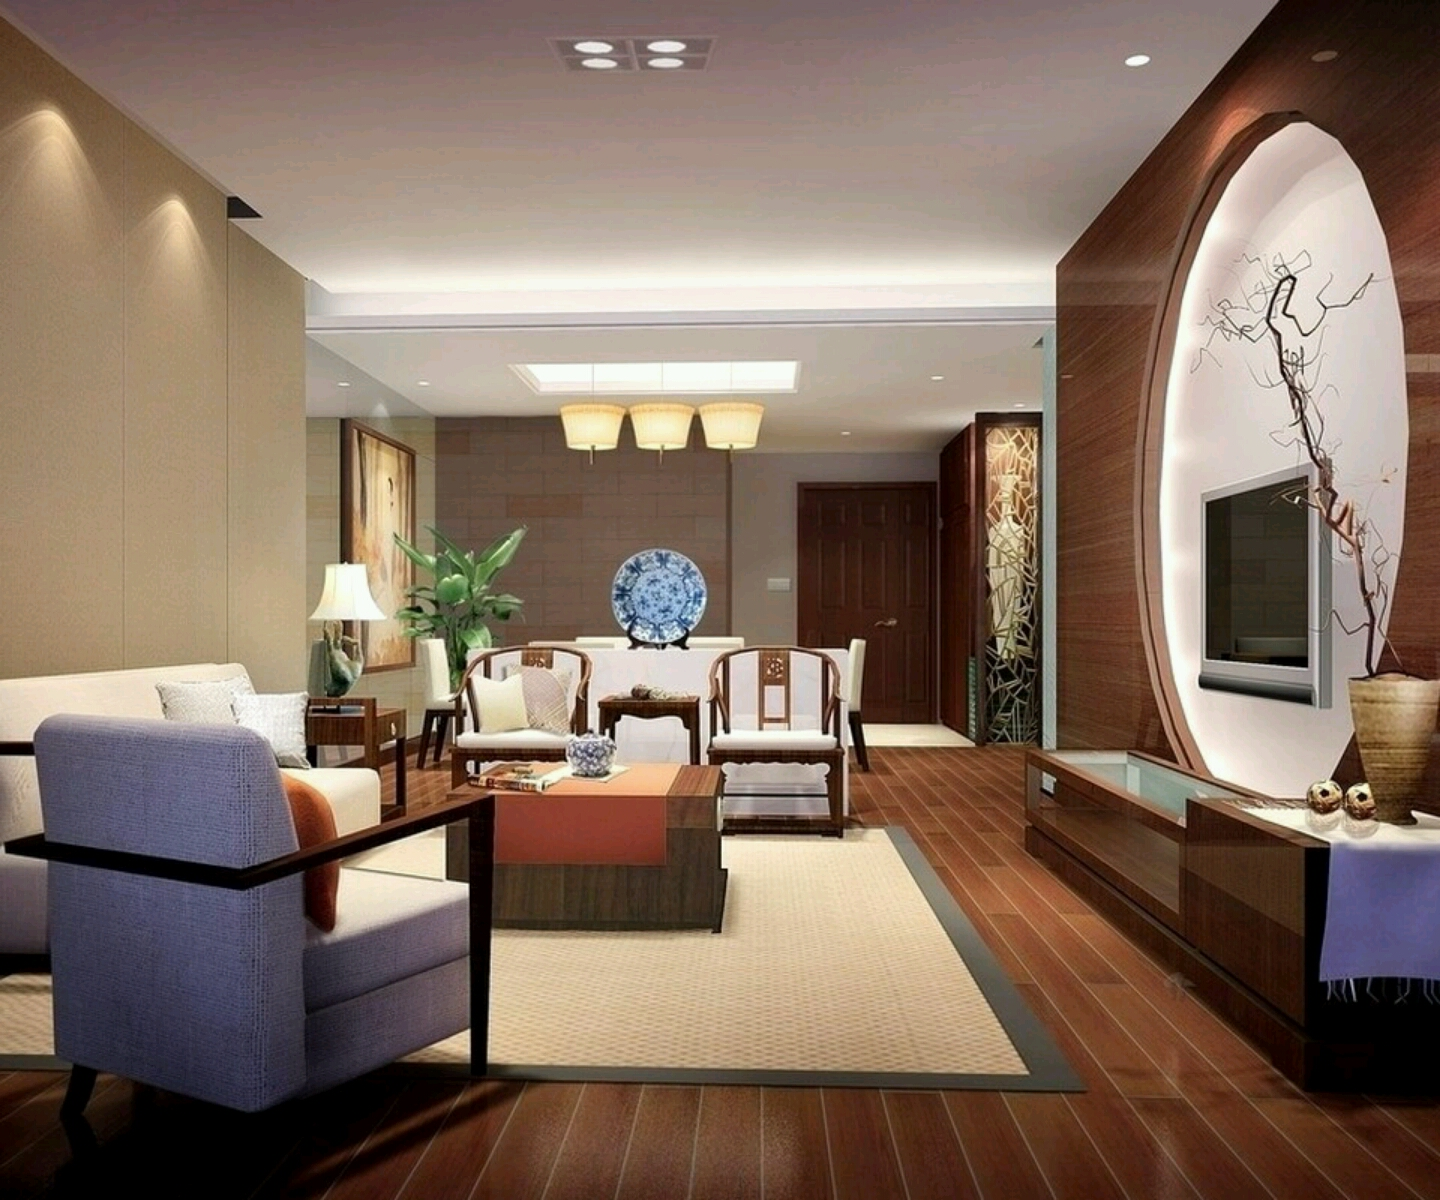 Luxury homes interior decoration living room designs ideas for Home decor ideas for living room